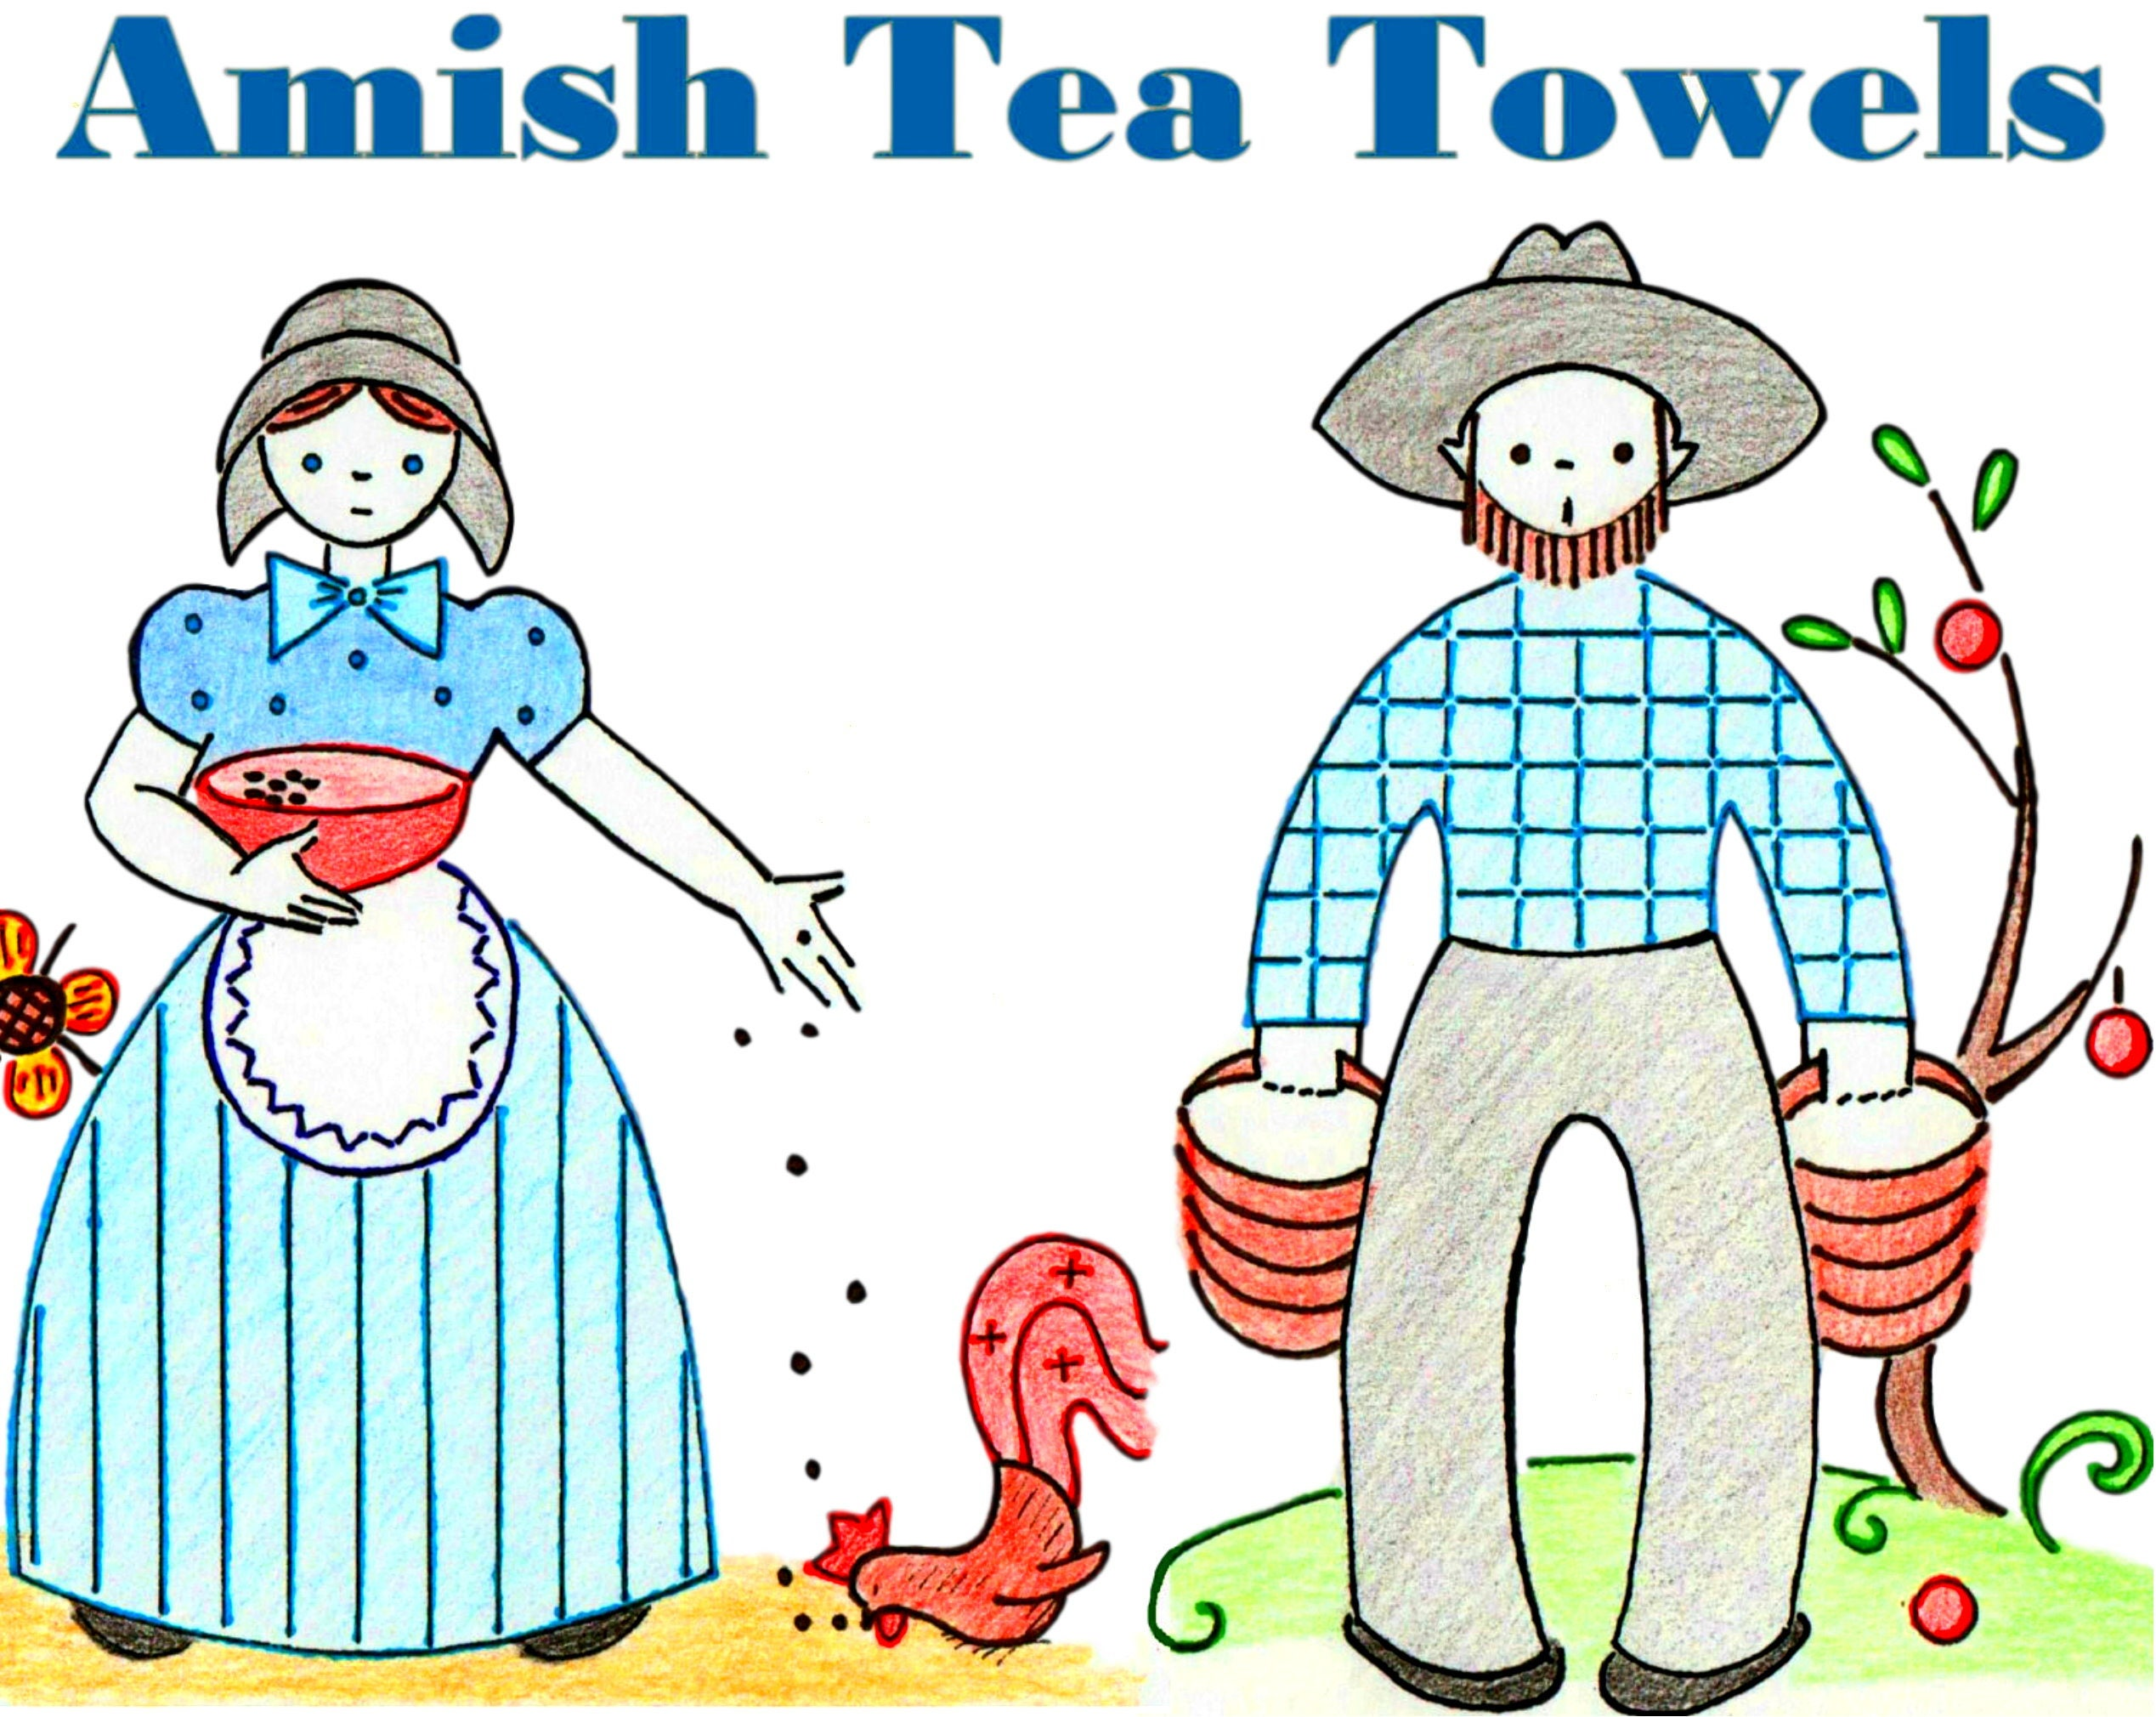 Amish Tea Towels Day Of The Week Flour Sack Towels PDF DOWNLOAD ...